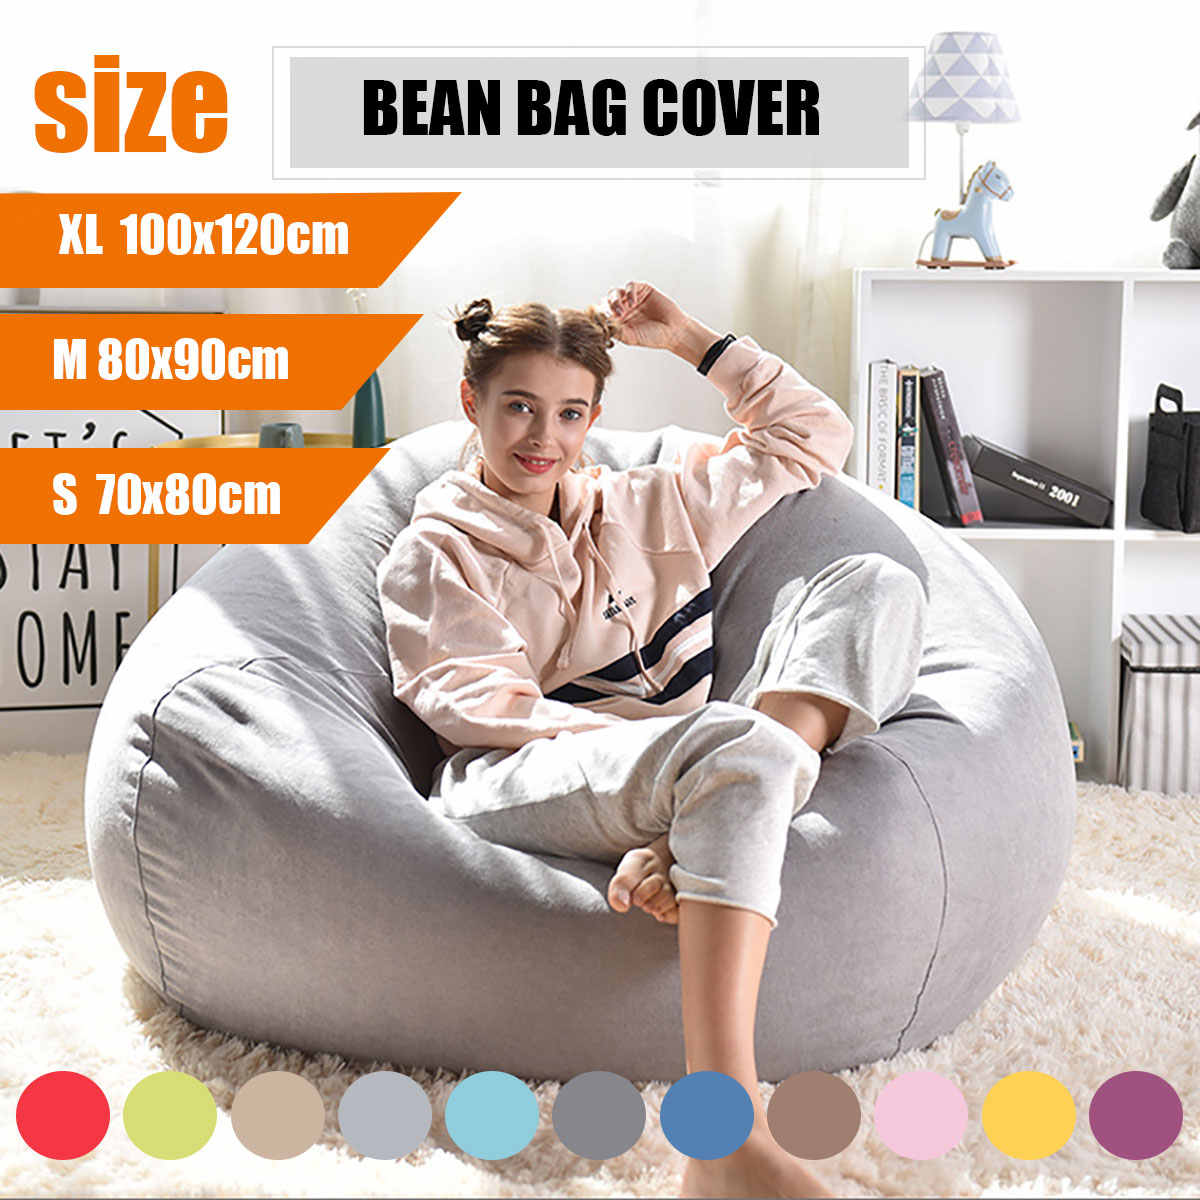 Lazy BeanBag Sofas without Filler Linen Cloth Lounger Seat Bean Bag Cover Chairs Pouf Puff Couch Tatami Living Room Furniture